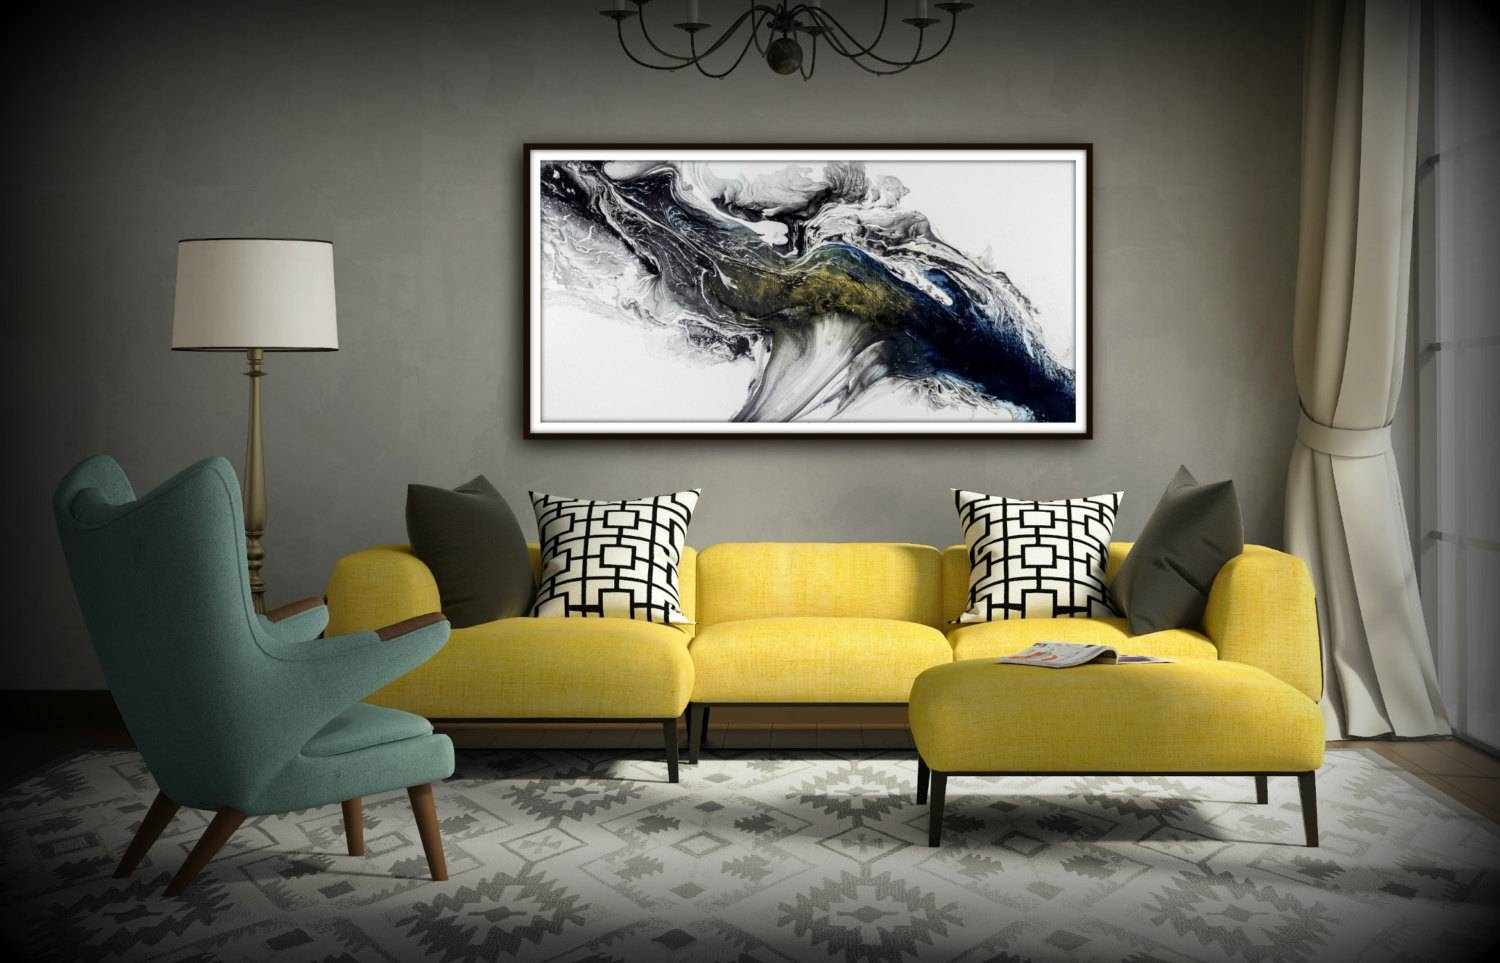 Black And White Wall Art Gift Abstract Painting Print Canvas Within Most Recently Released Large Black And White Wall Art (View 3 of 20)